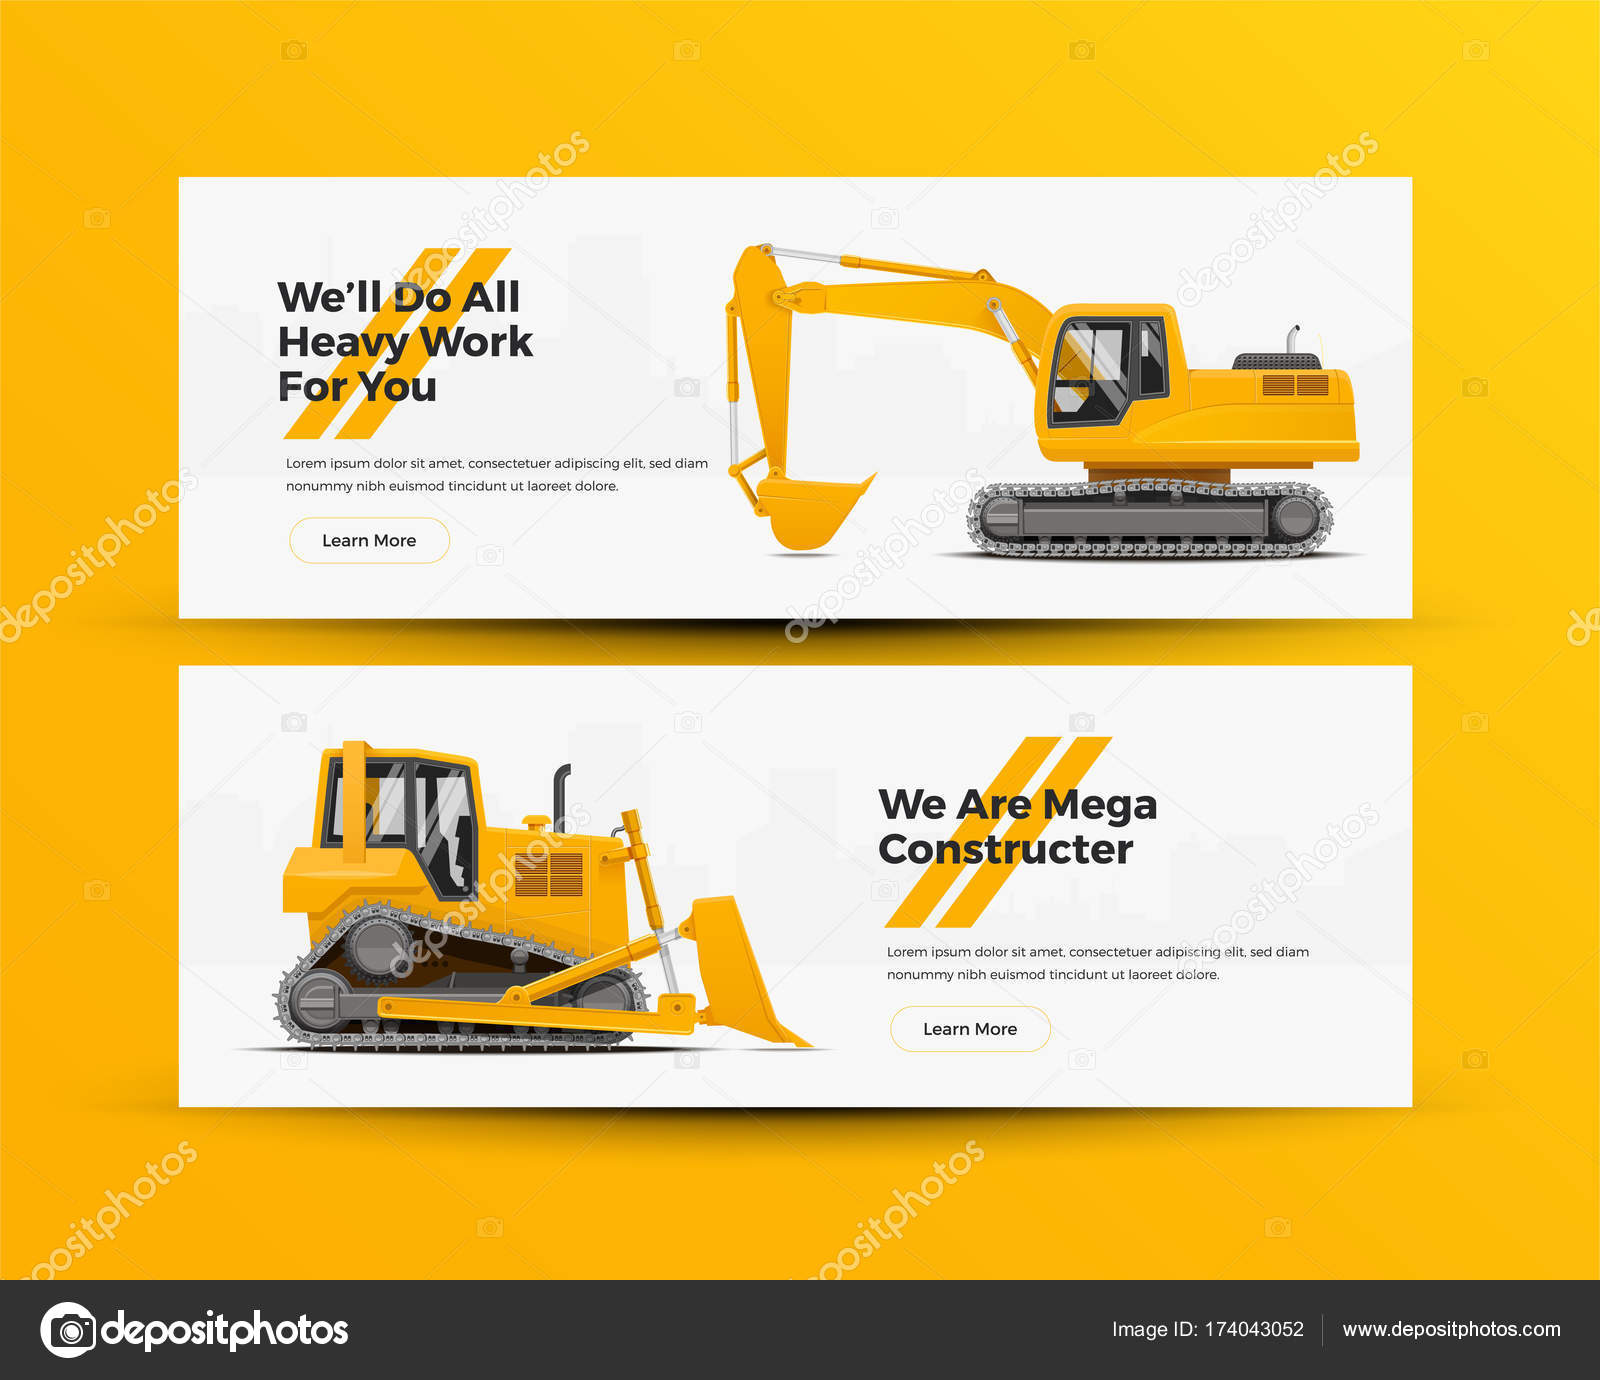 Construction Equipment Banners App Play Store Banners